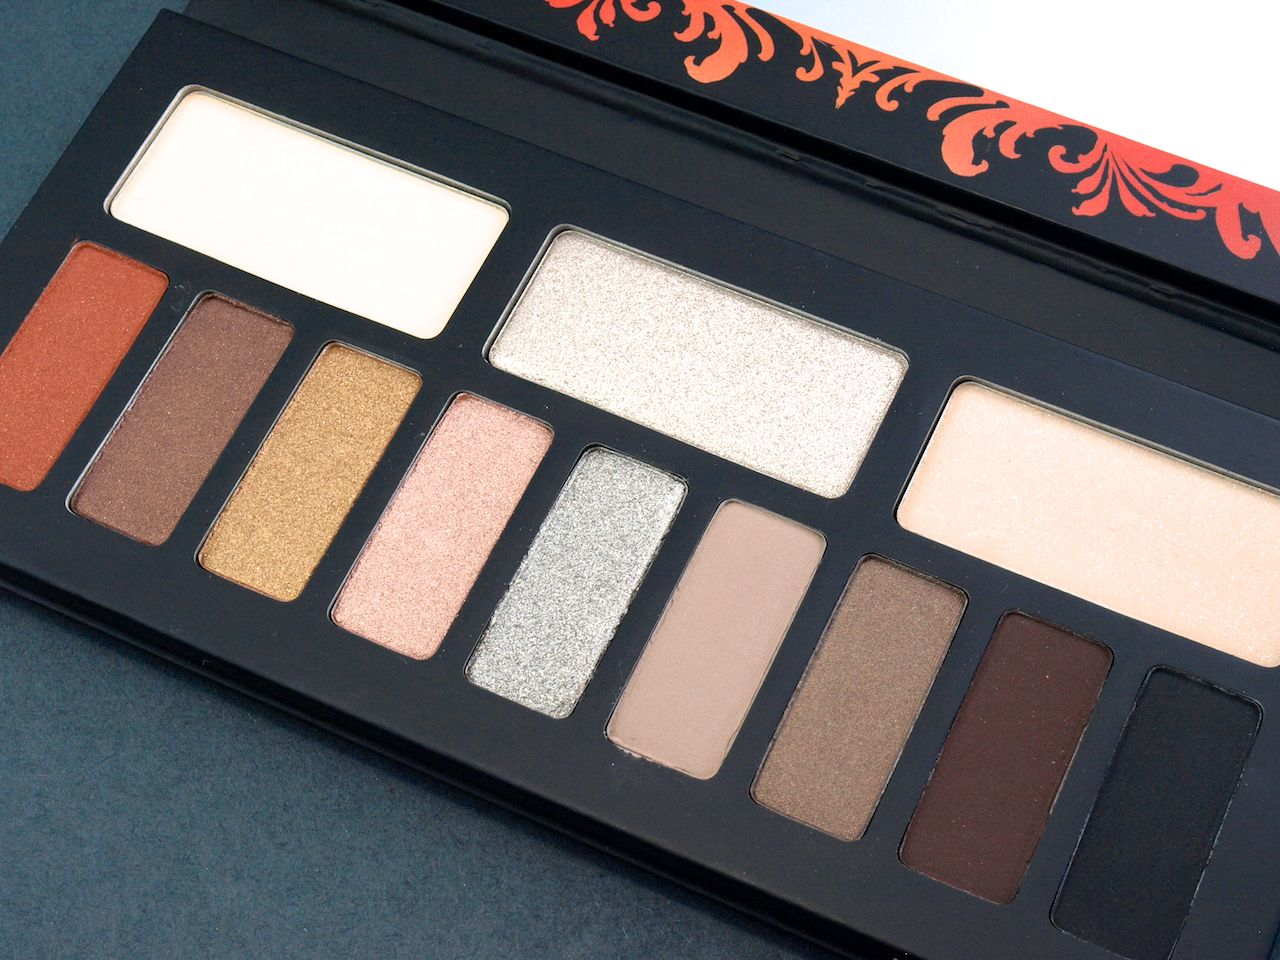 Kat Von D Monarch Eyeshadow Palette: Review and Swatches